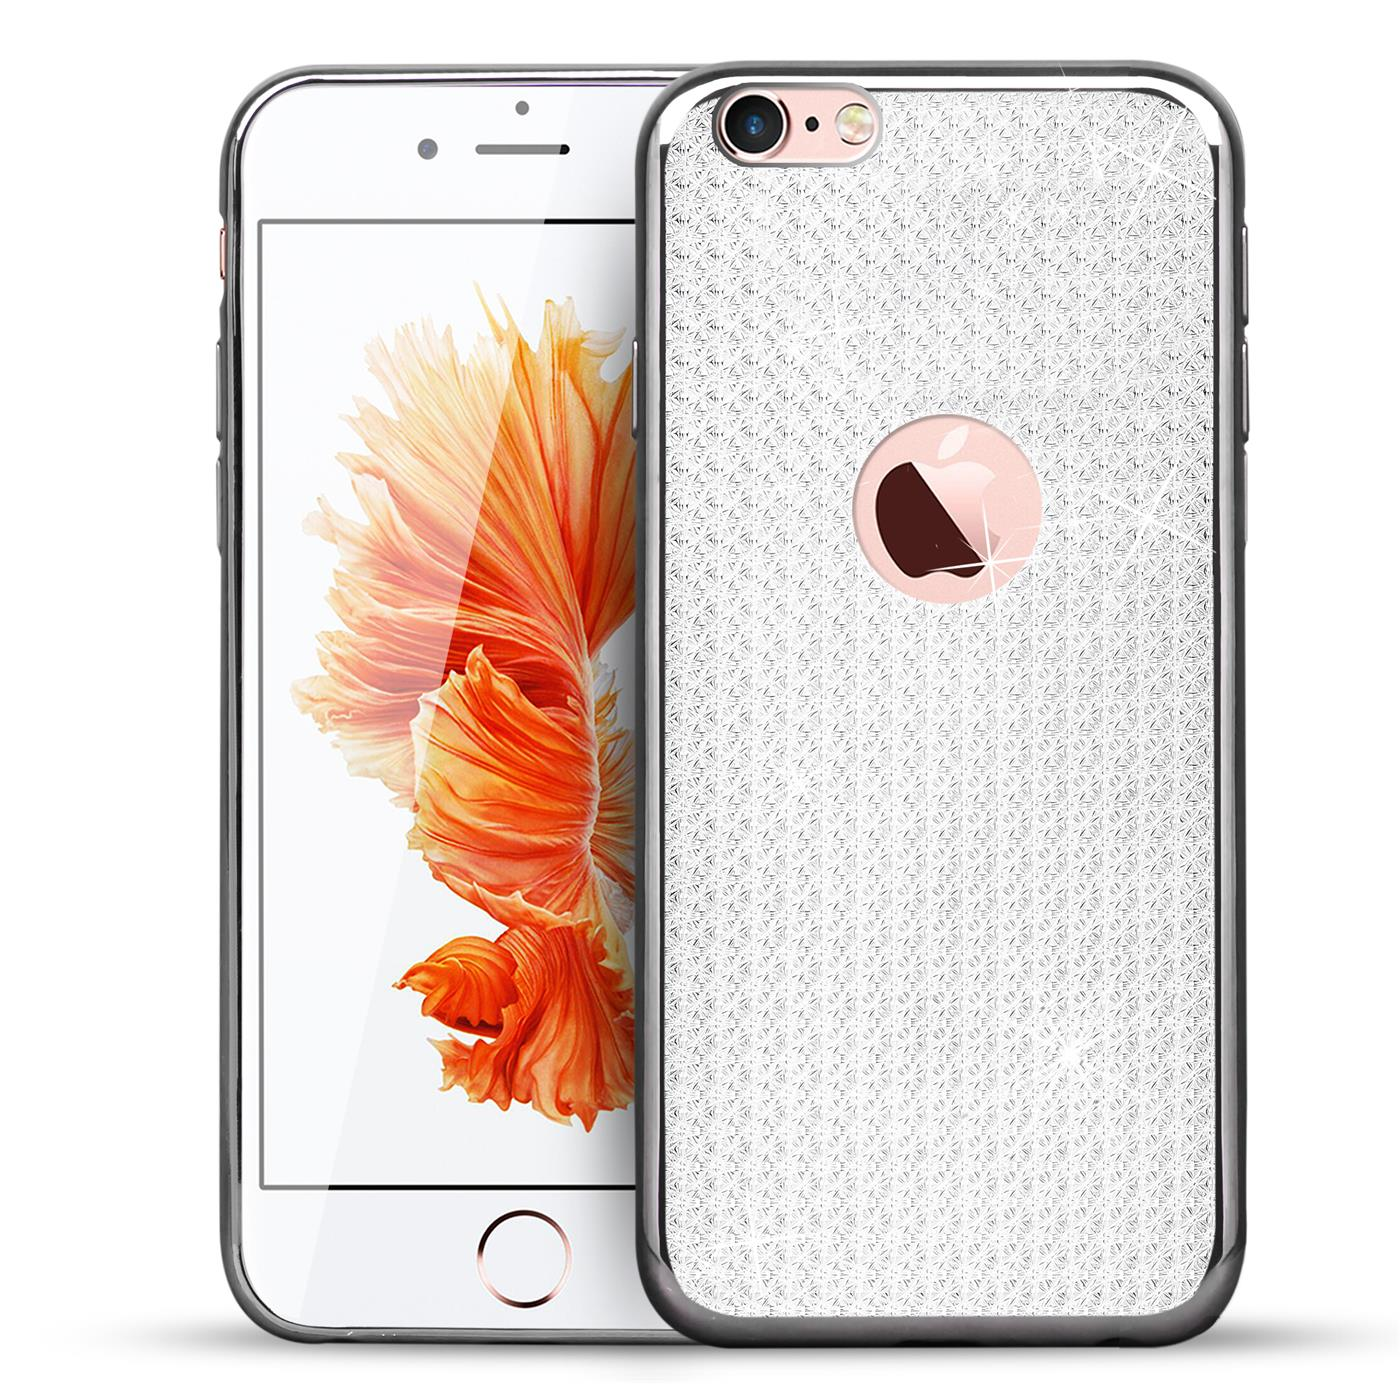 Phone Case Apple Iphone 6 S Plus Silicone Case Case Cover Shiny 4058455687266 Ebay